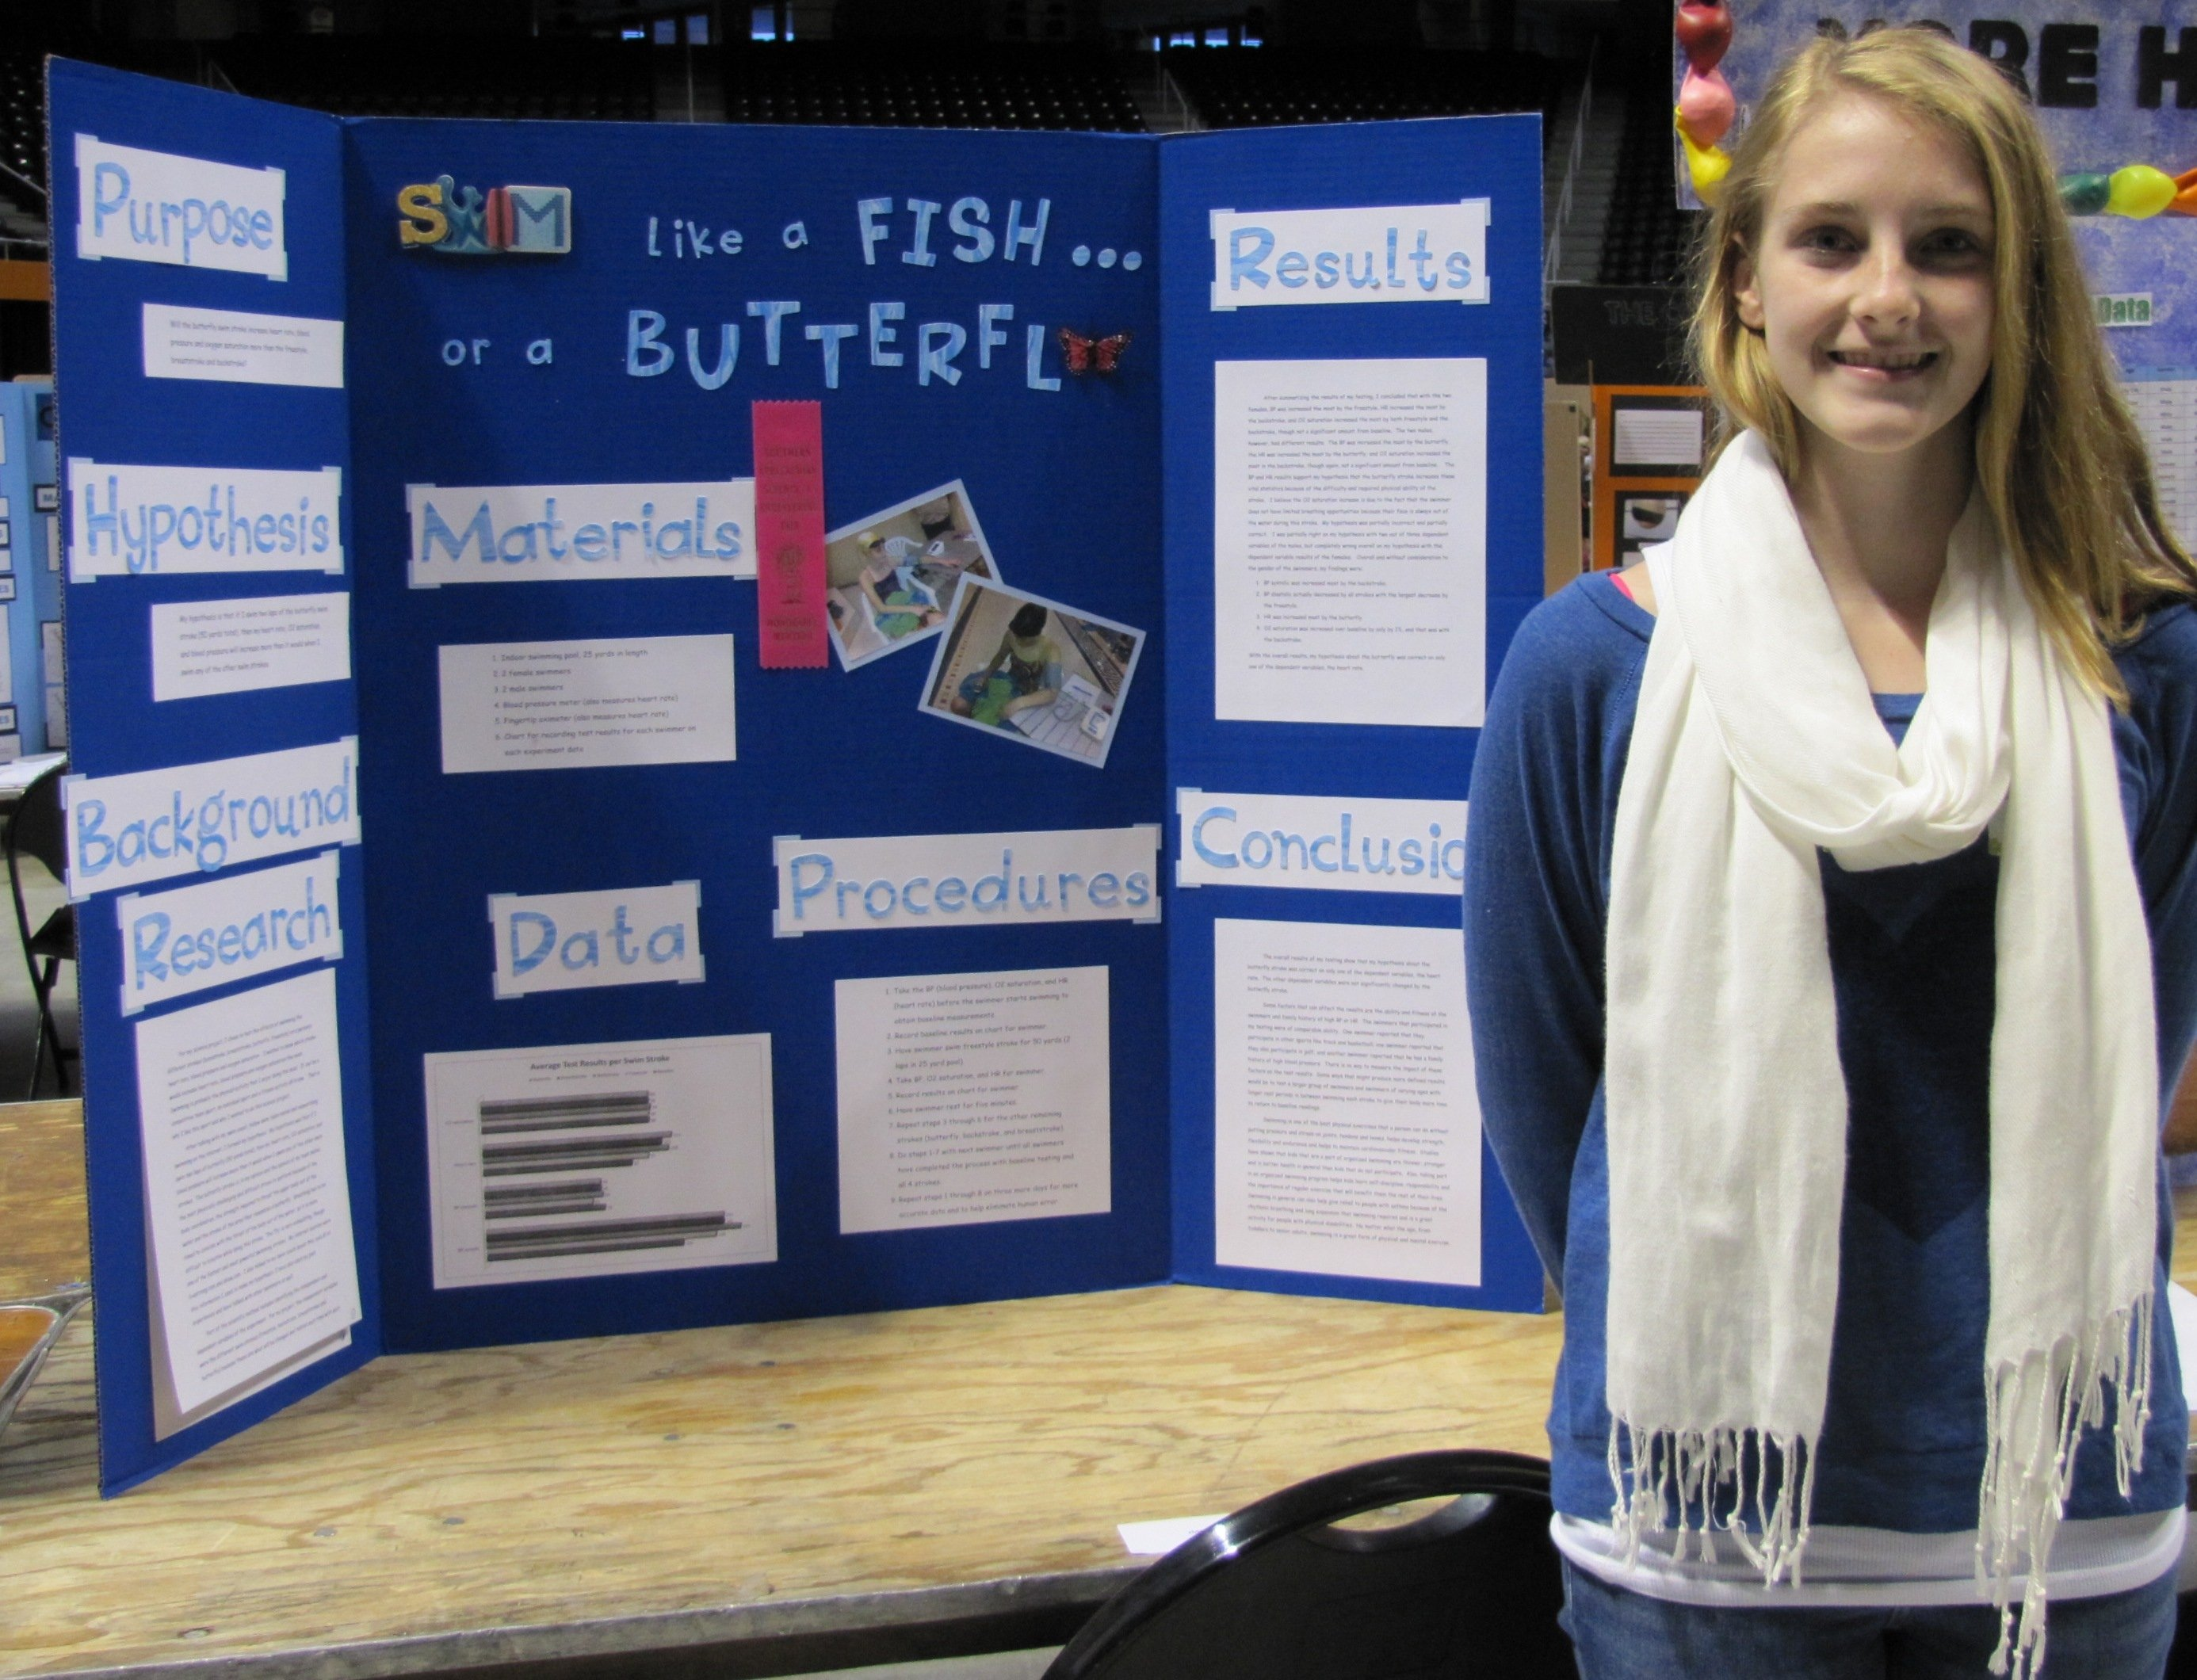 10 Stylish High School Level Science Fair Project Ideas young scientists merit nimbios science fair prizes for swimmer 6